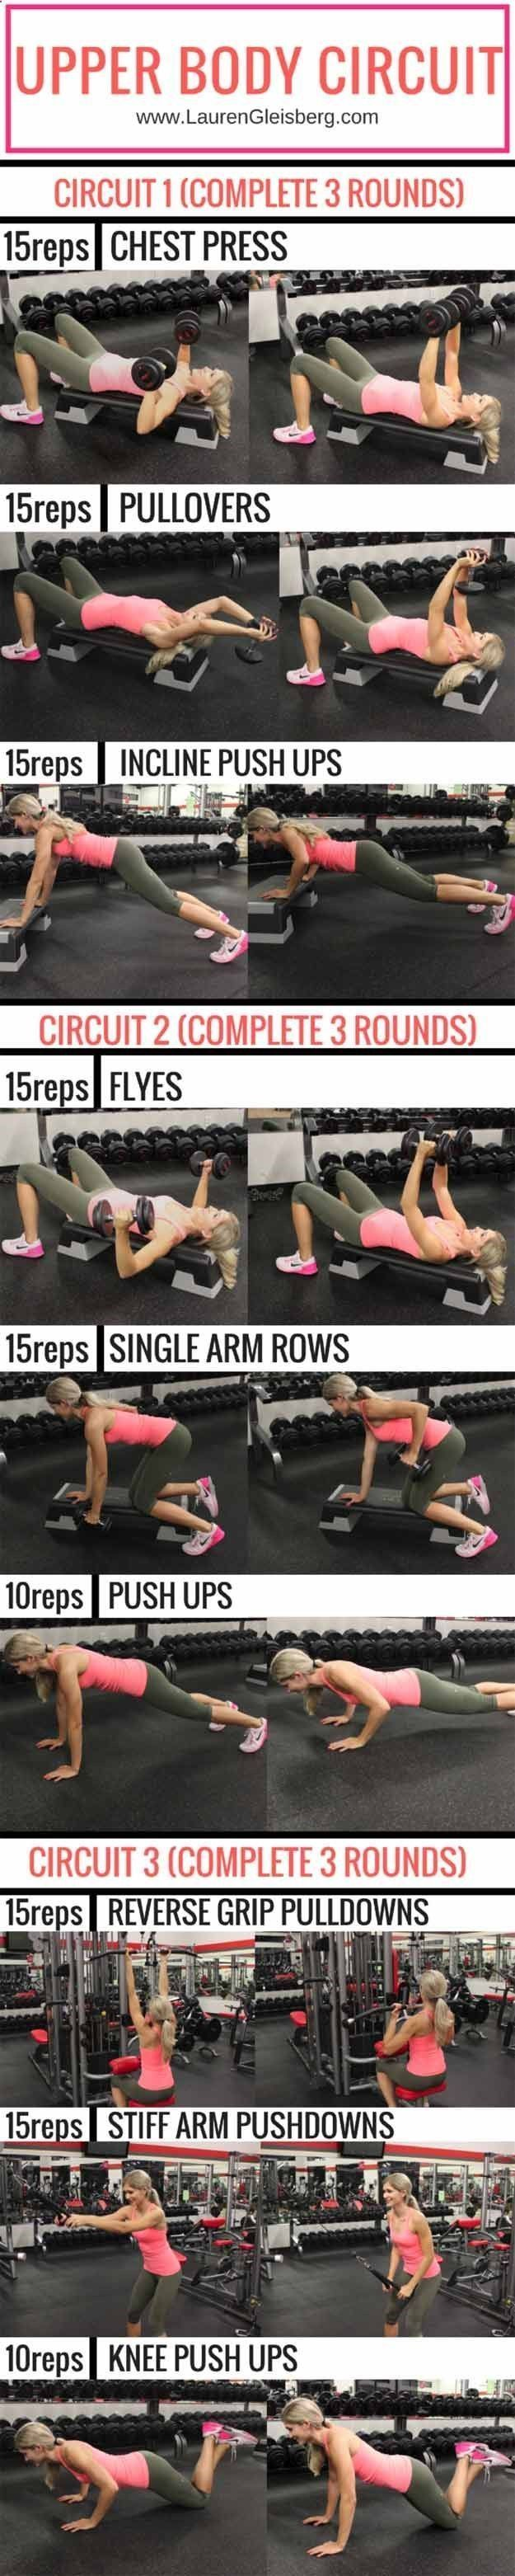 21 Minutes a Day Fat Burning - Quick Workouts You Can Do on Your Lunch Break - Upper Body Circuit Workout - Awesome Full Body Workouts You Can Do Right At Home or On Your Lunch Break- Cardio Routine for Beginners, Abs Exercises You Can Bang Out Before Shower - You Don't Need to Hit the Gym to Get a Flat Belly or Have One of Those Awesome Booties - Morning Exercises for Arms and Night Workouts for Legs - Fat Burning Plans For Women and For Moms - thegoddess.com/... Using this 21-Minute ...